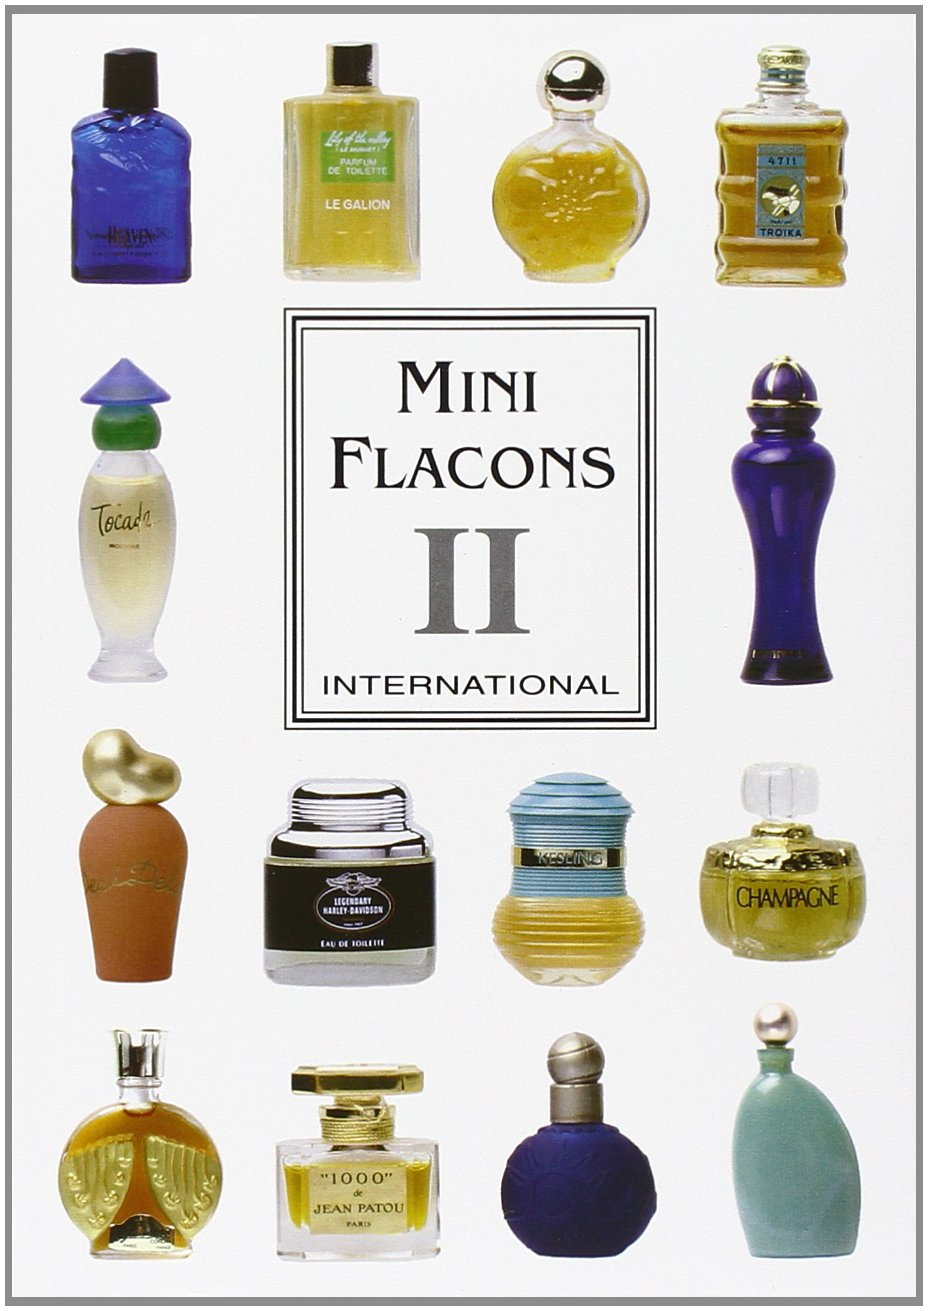 Mini Flacons International, Bd.2 Taschenbuch – Mai 1996 Malte Strauss Axel Hennel Collect-It.De Gmbh 3929025132